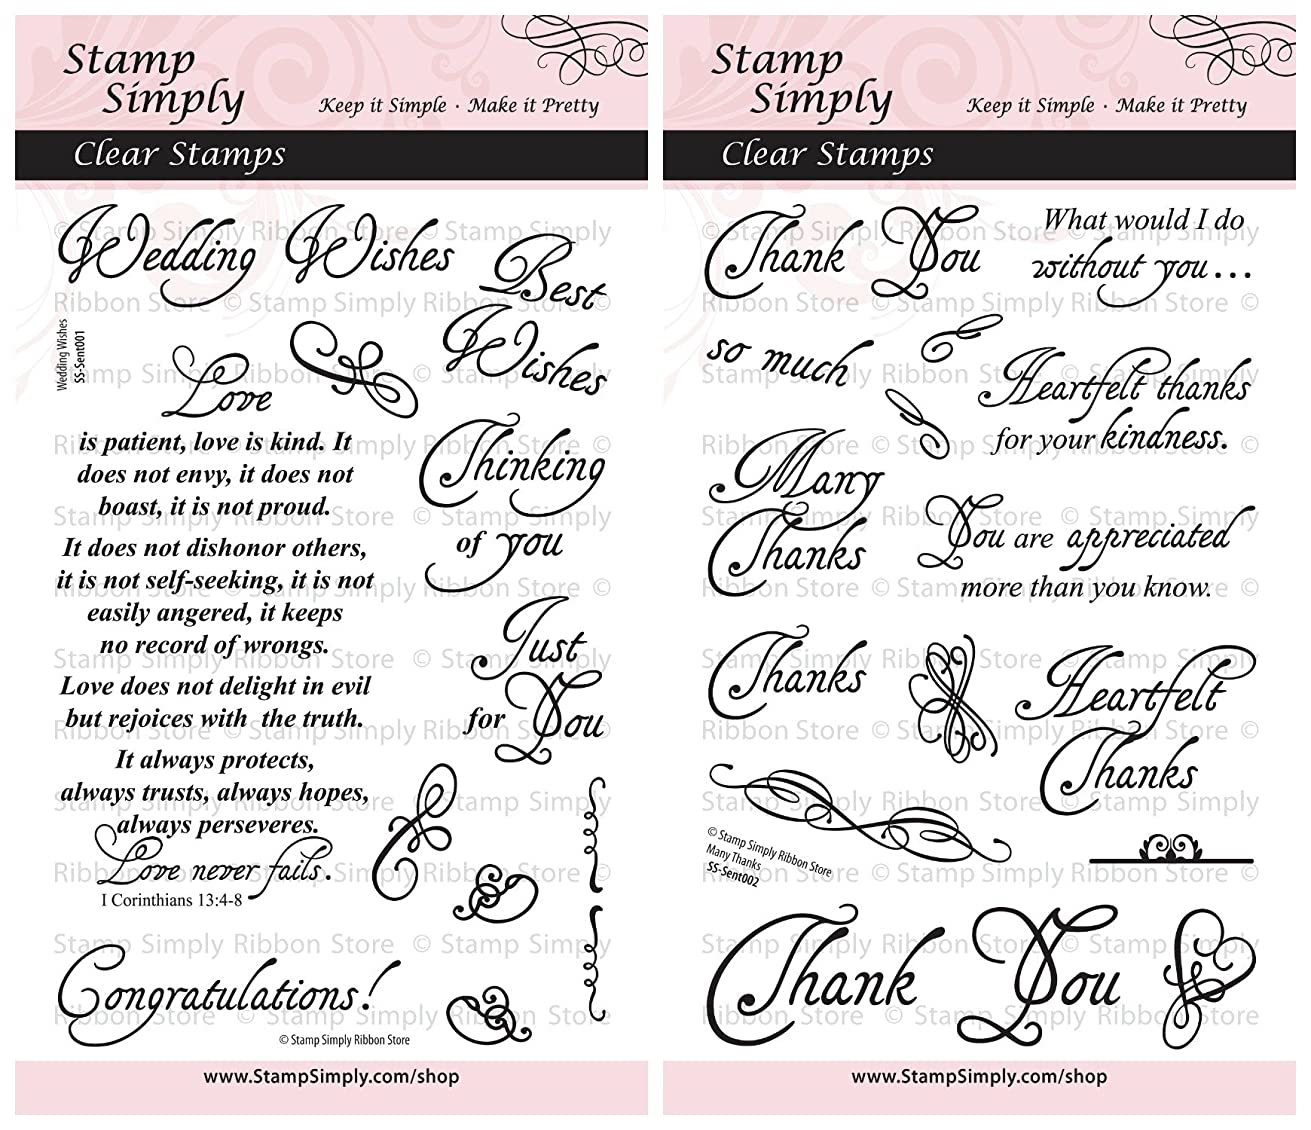 Stamp Simply Clear Stamps Wedding Wishes and Many Thanks Christian Religious (2-Pack) 4x6 Inch Sheets - 27 Pieces